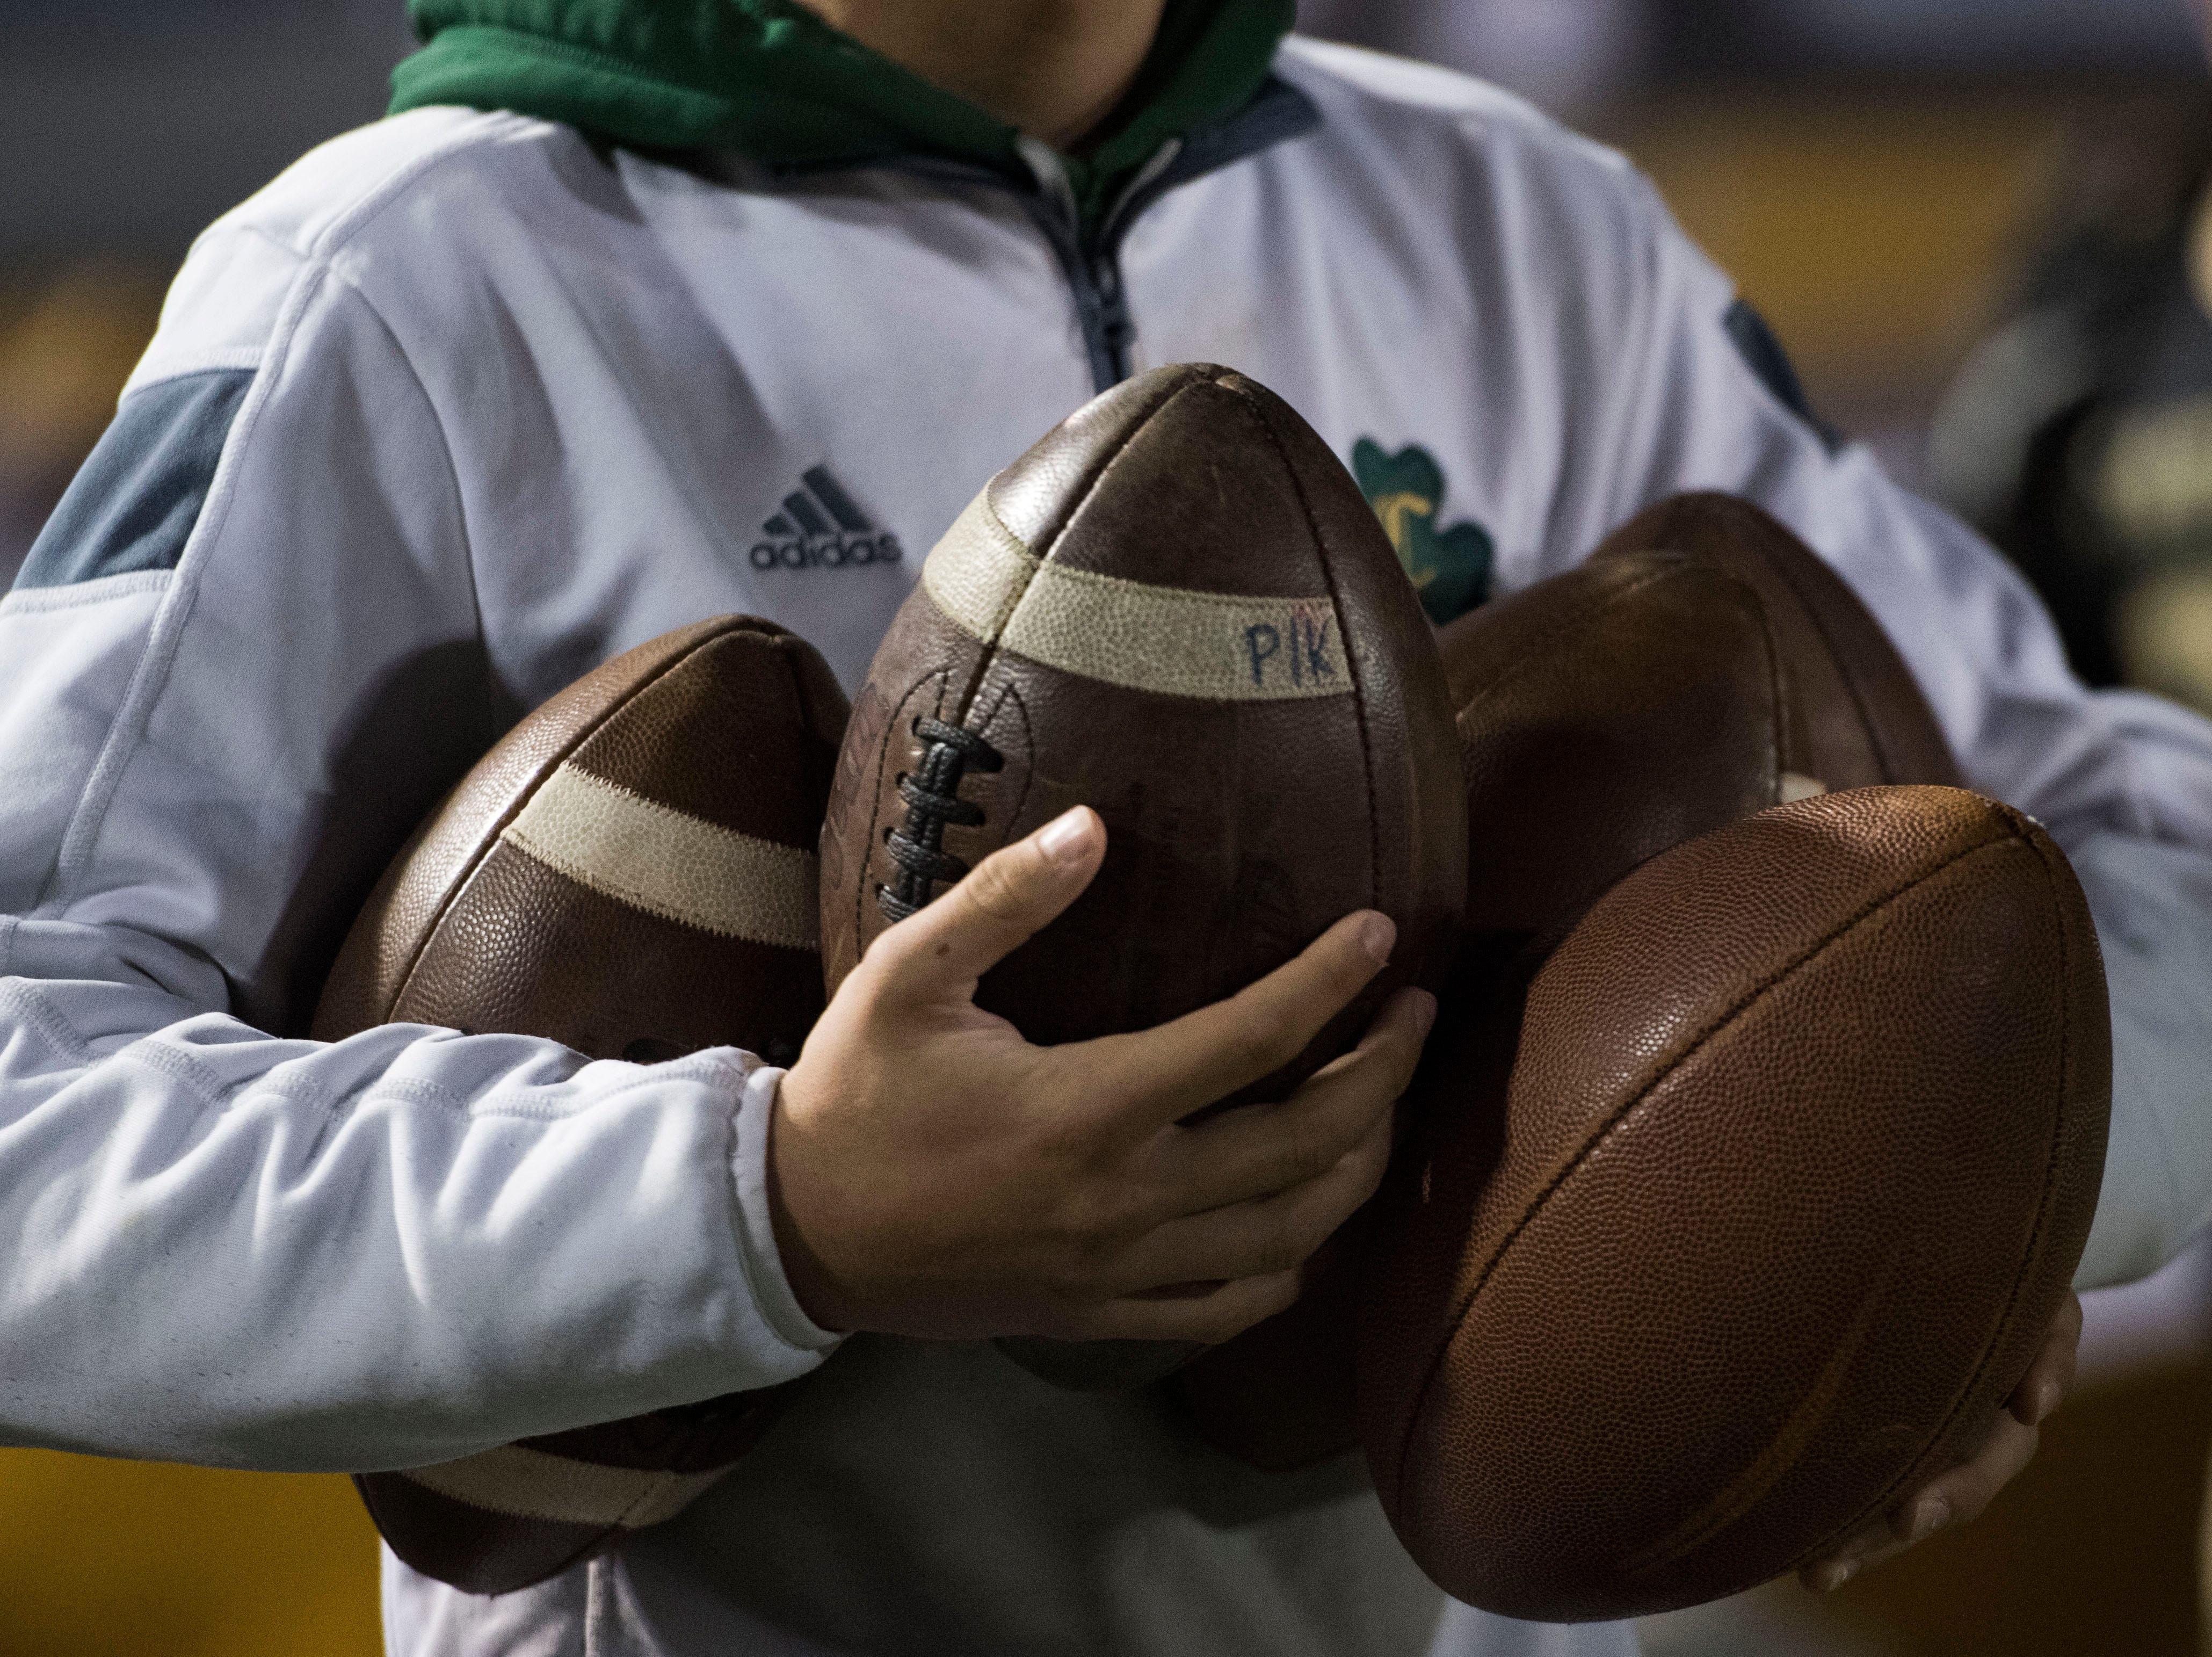 A Catholic ball boy holds multiple balls on the sidelines before a game between Catholic and Central at Catholic Friday, Nov. 23, 2018.